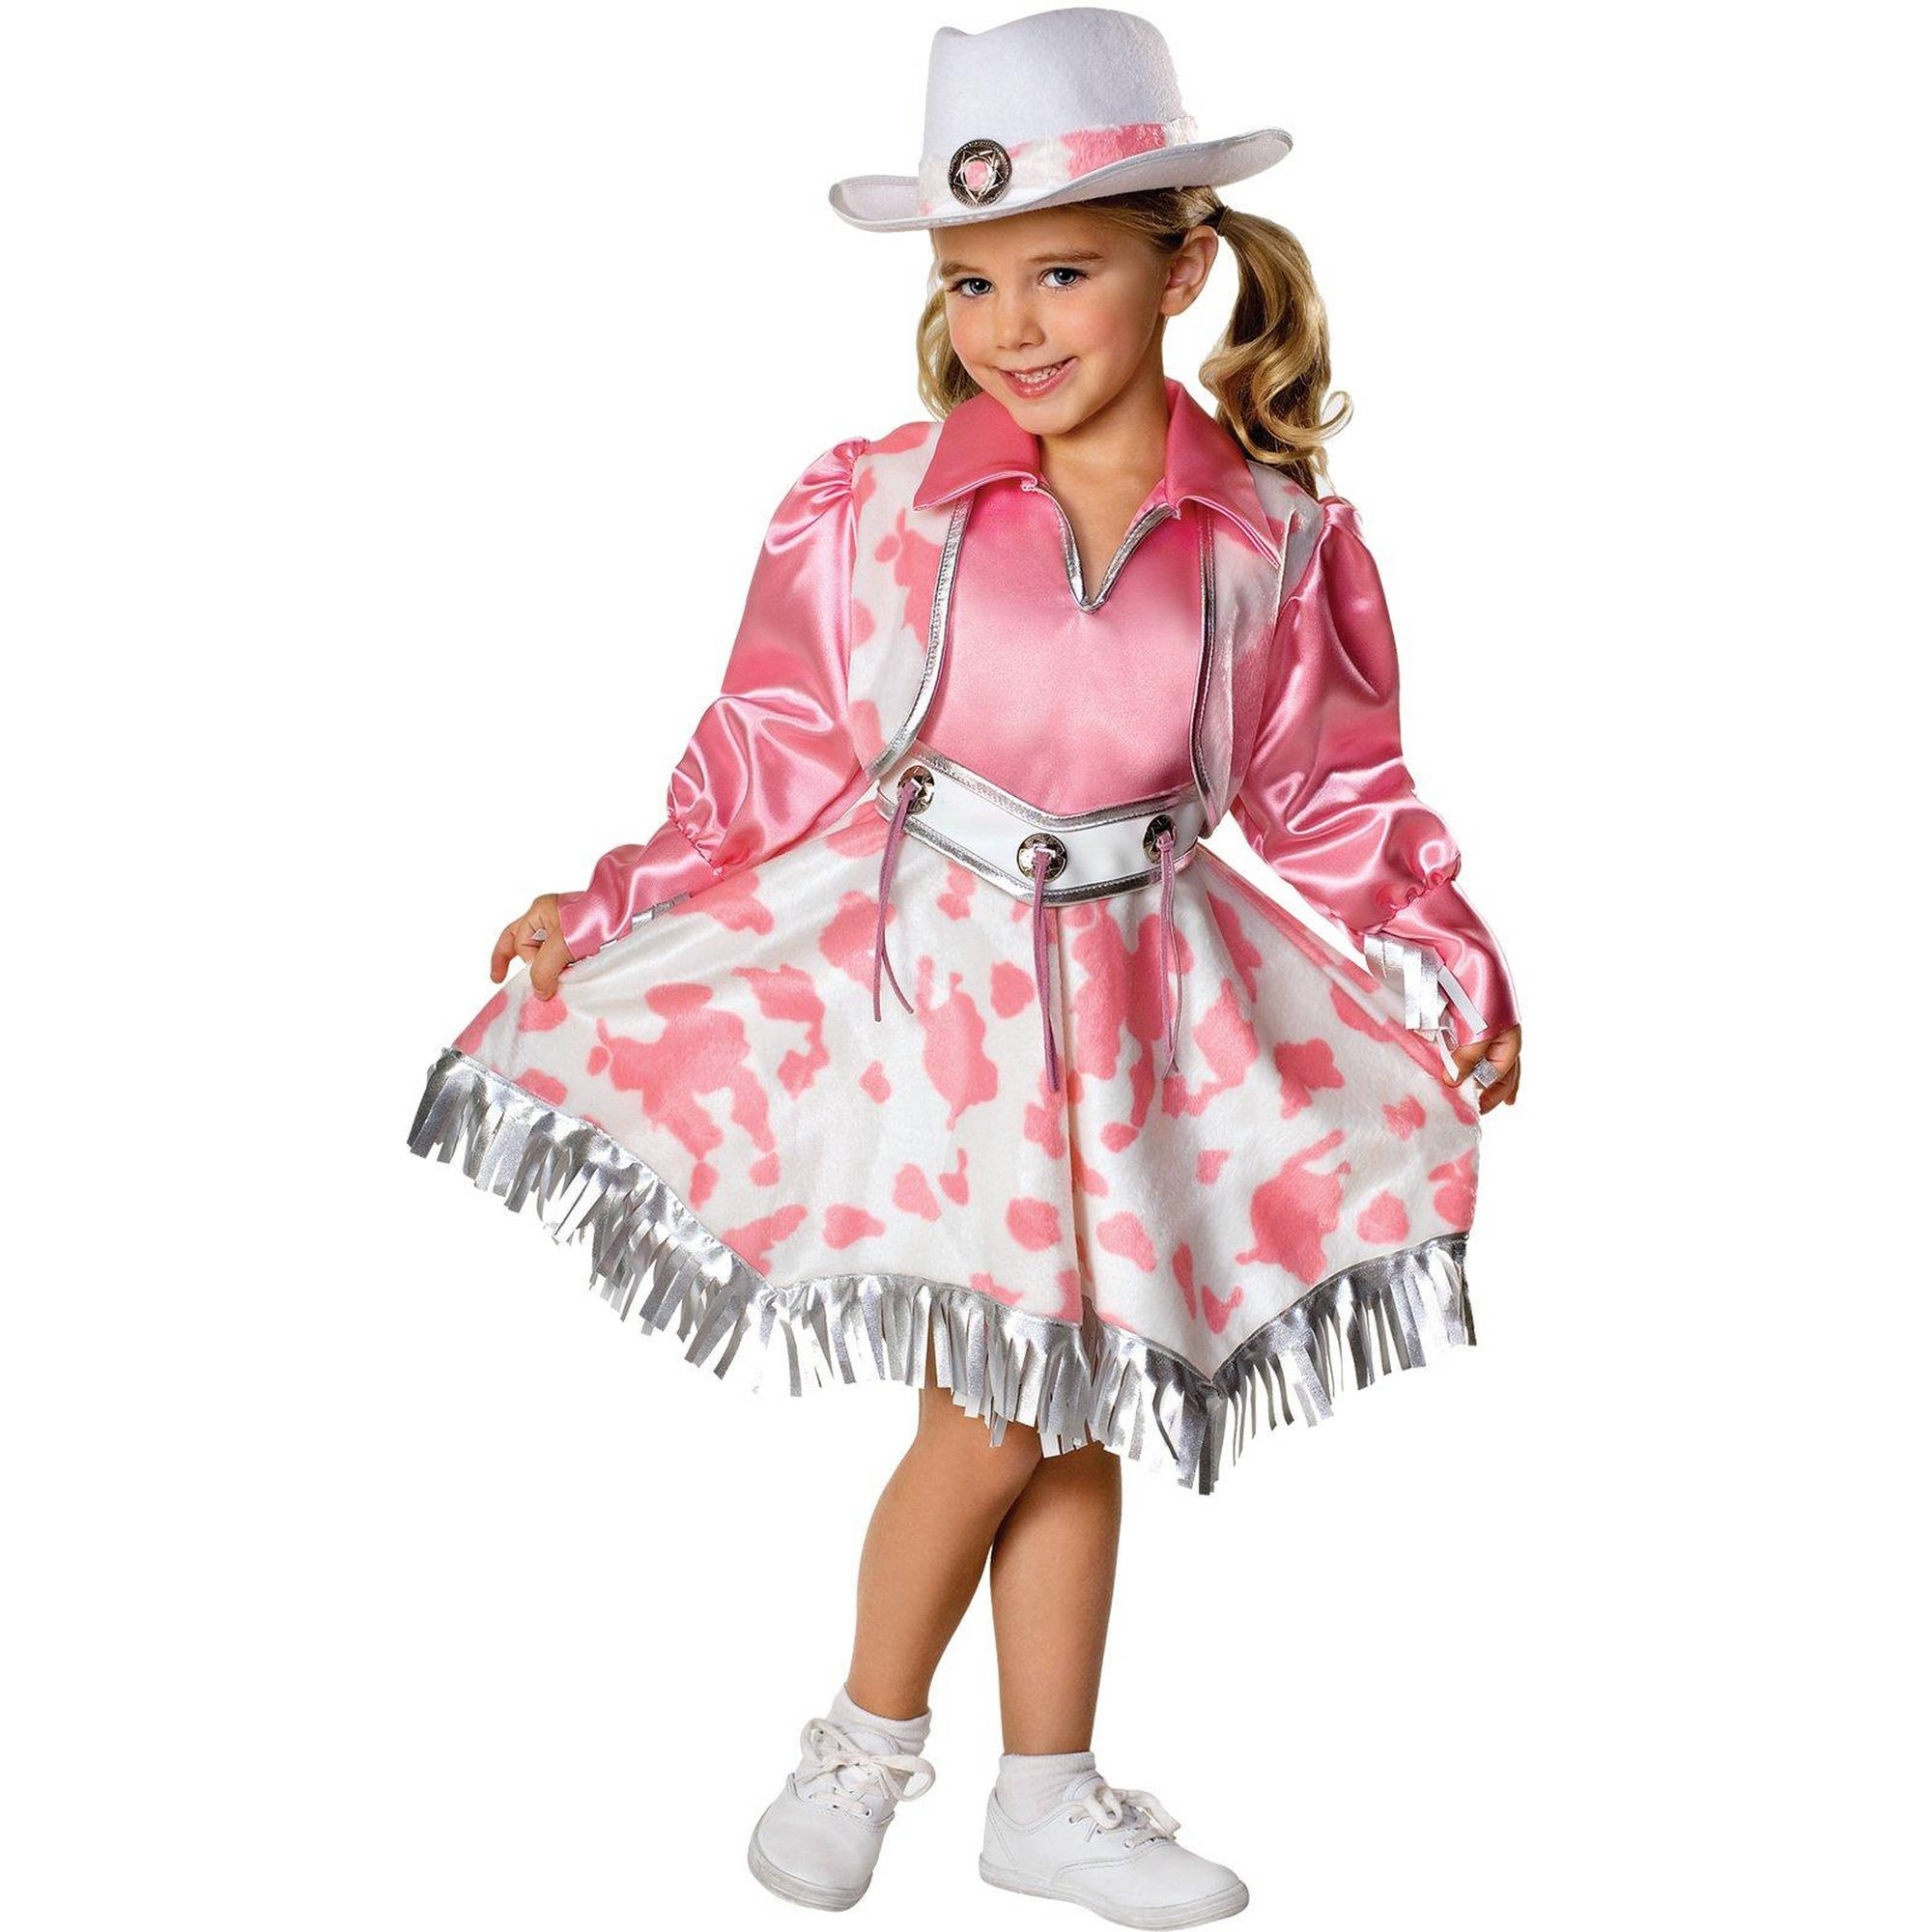 Western Diva Toddler Halloween Costume, 2T